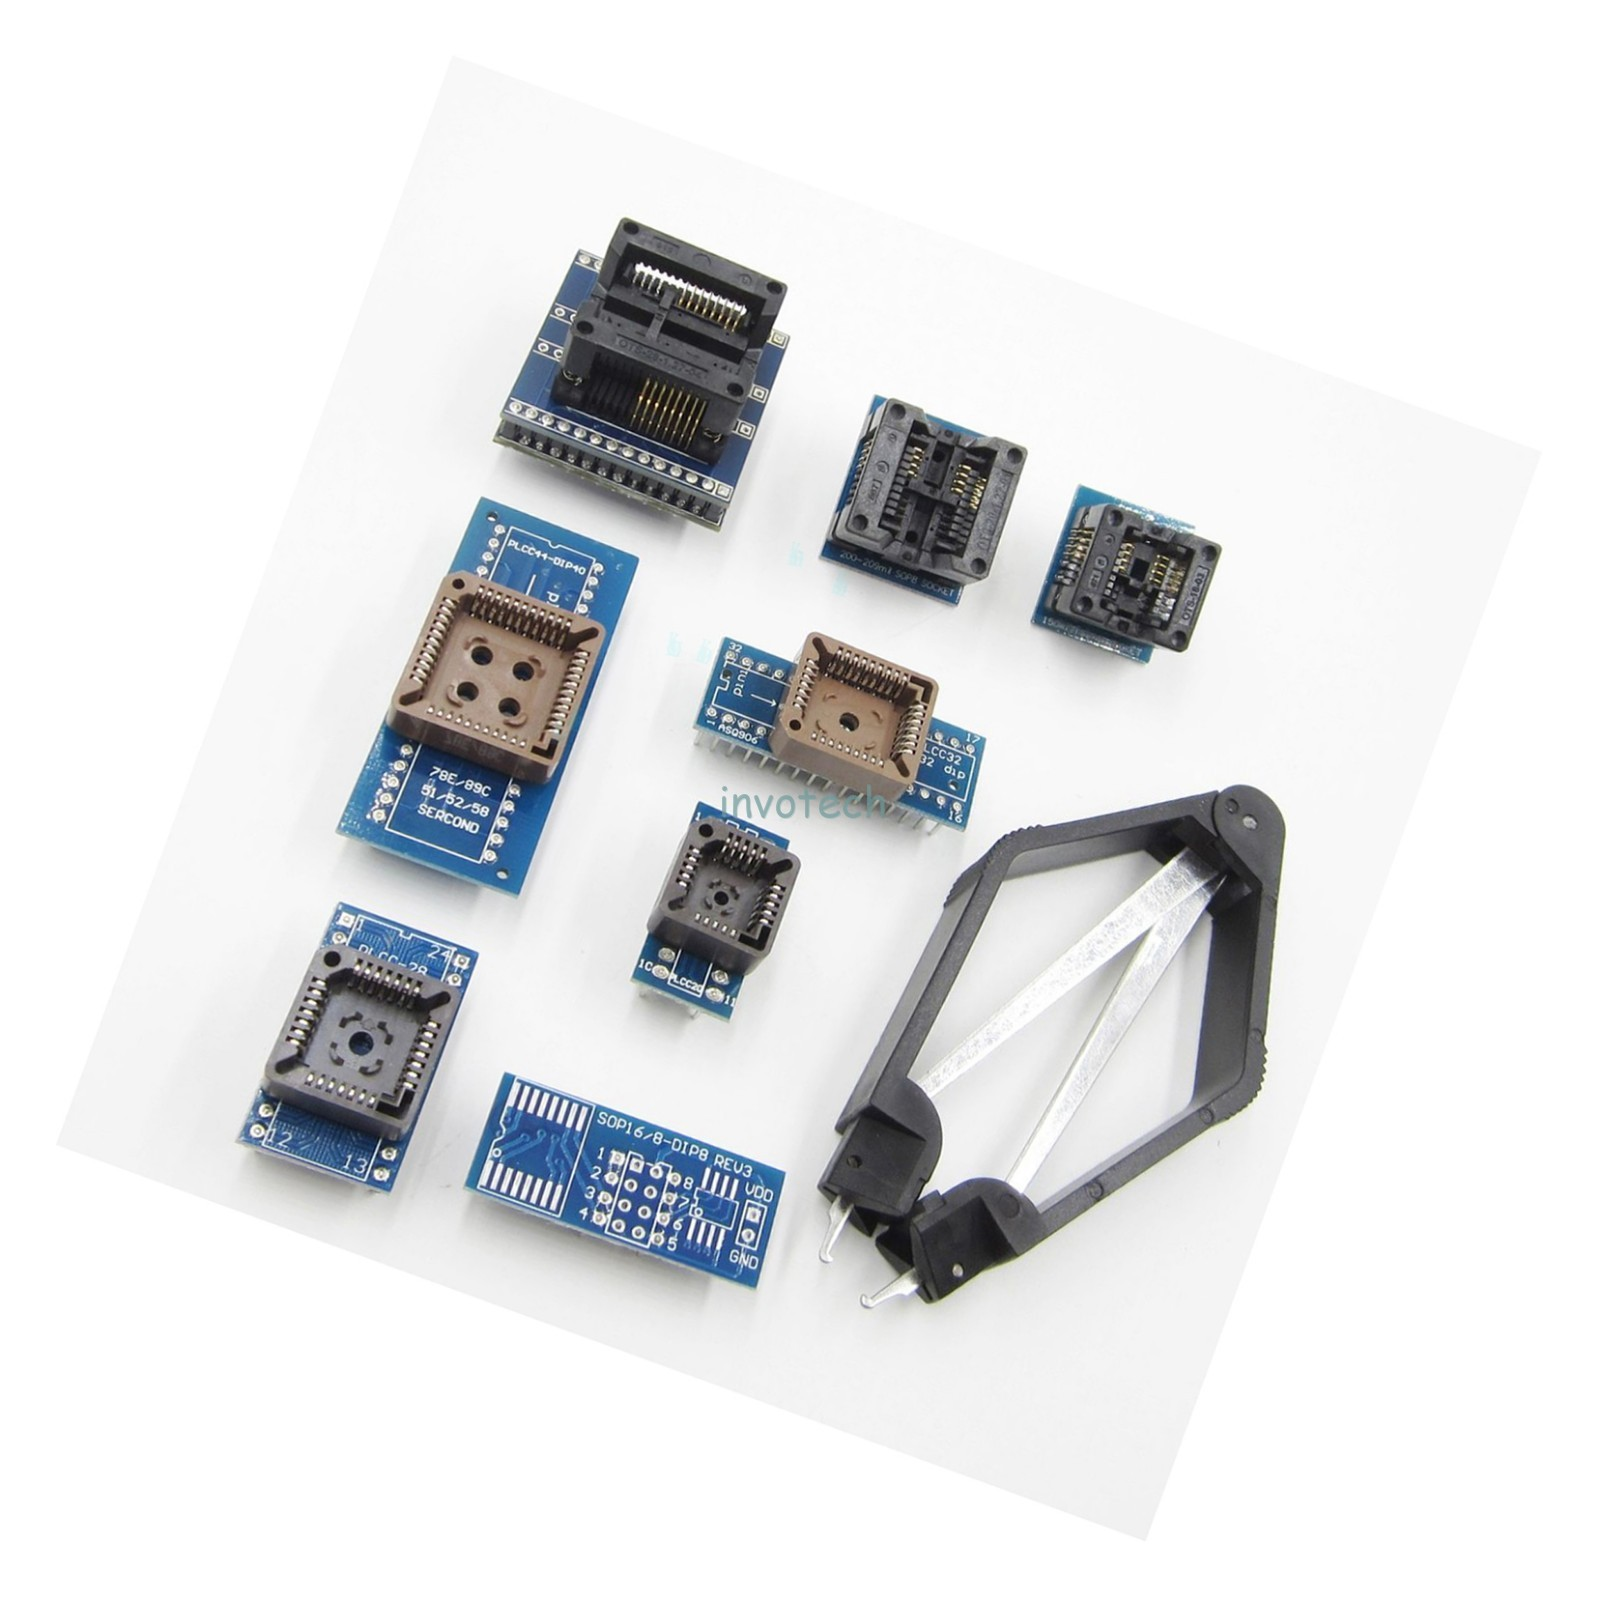 8 Programmer Adapters Sockets Kit for TL866CS TL866A EZP2010 with IC Extractor